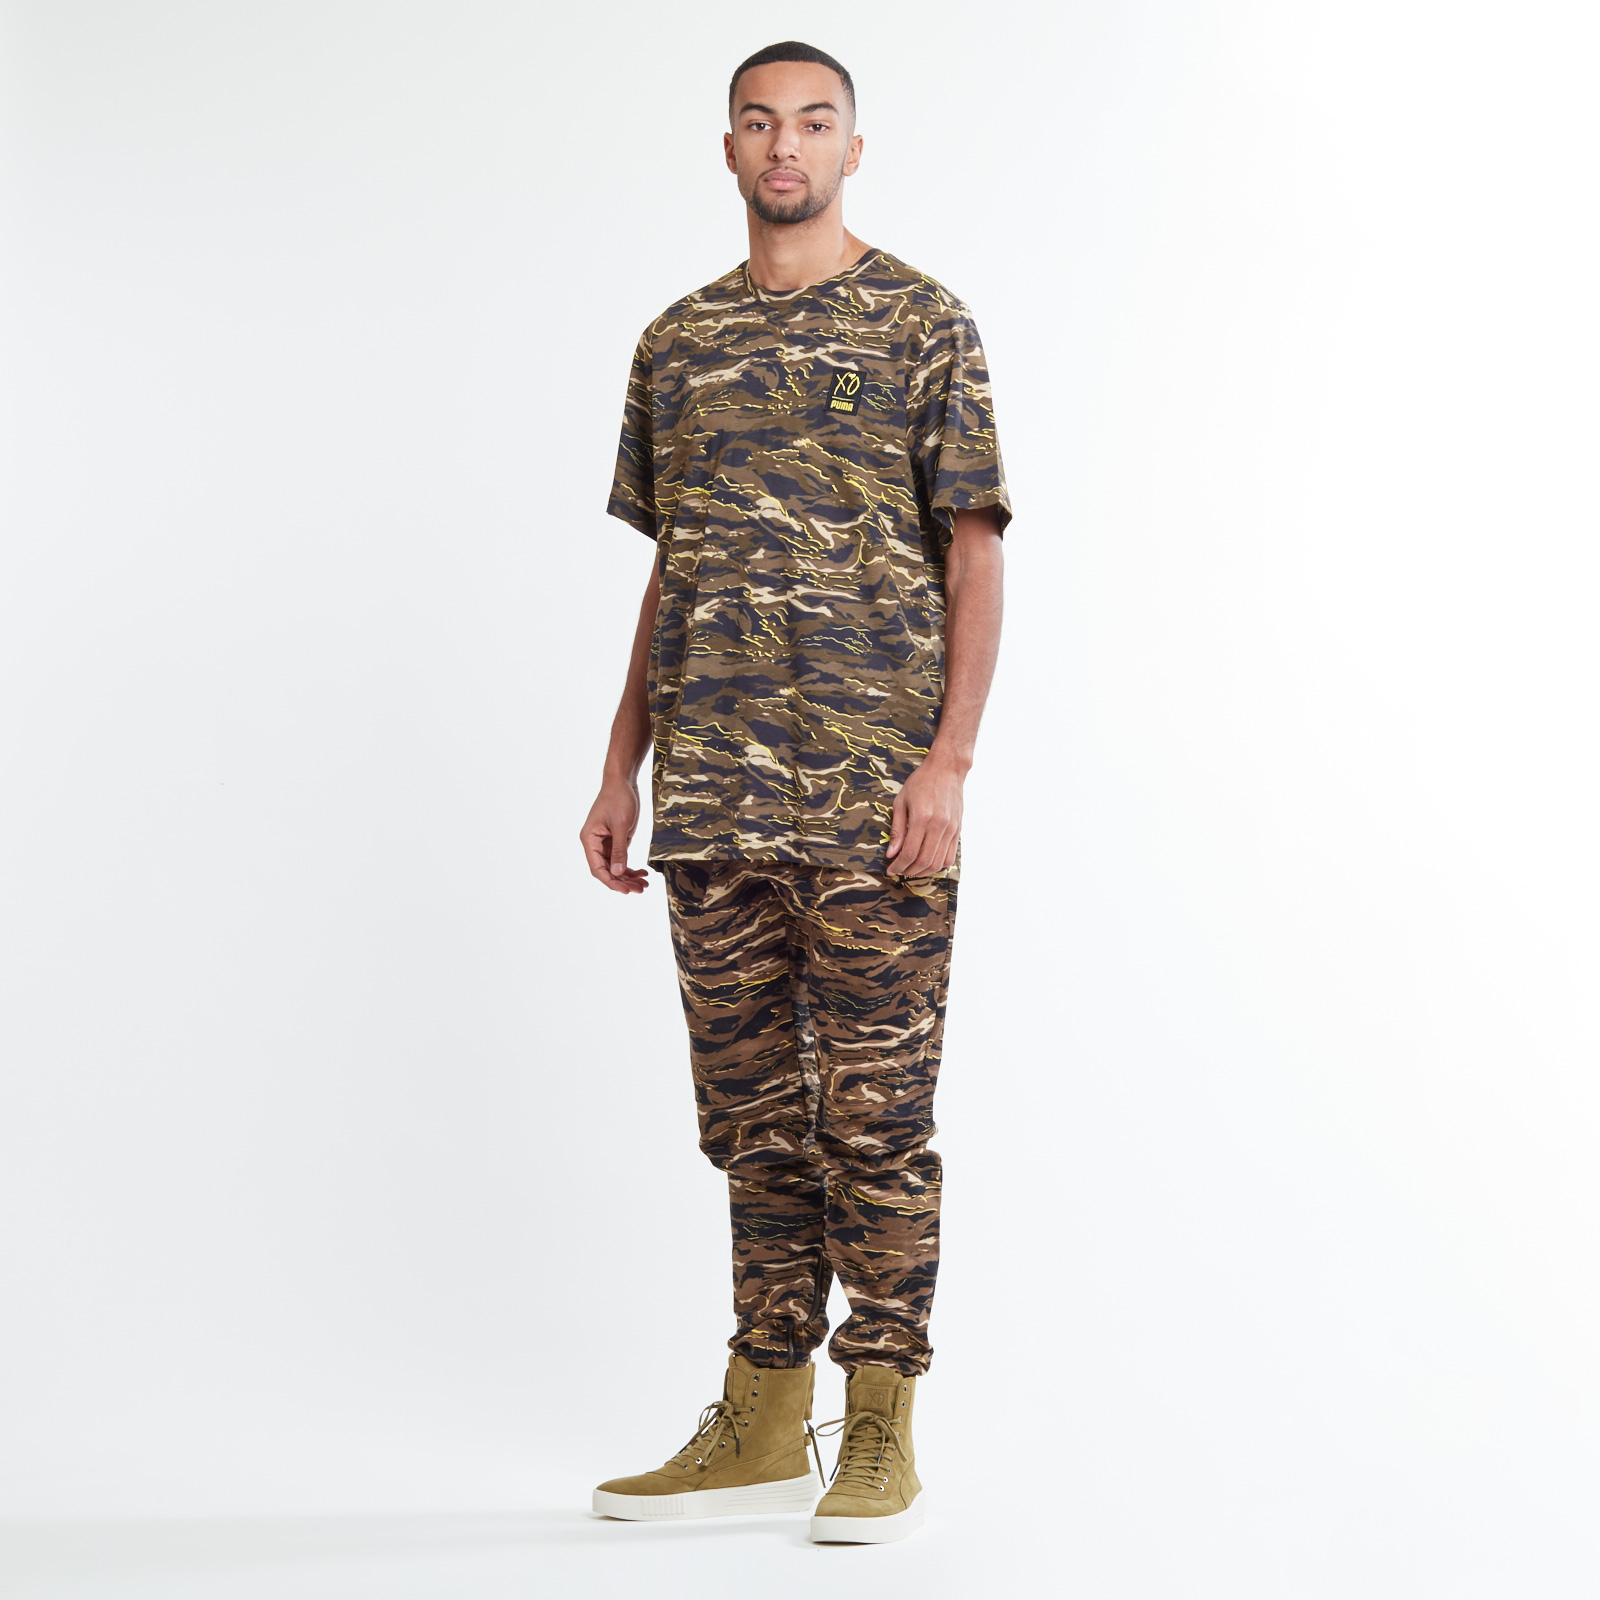 3aef162a8fe Puma X XO Graphic Tee - 575351-51 - Sneakersnstuff | sneakers ...